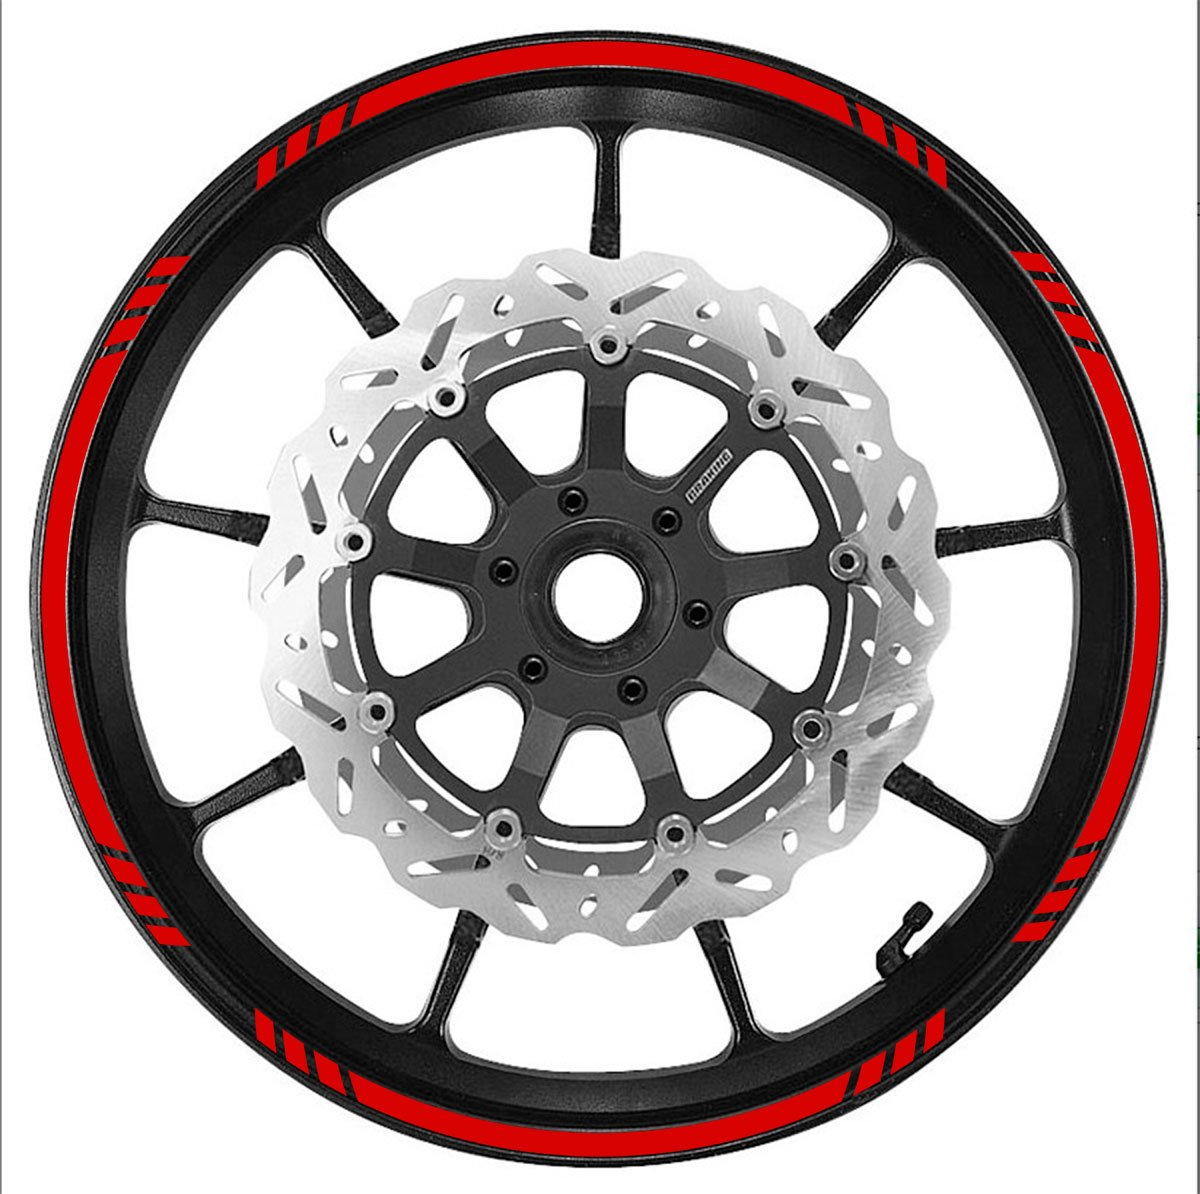 RED Wheel Rim Tape Graduated Stripe fit ALL Makes of Motorcycles, Cars, Trucks Vehicleartz